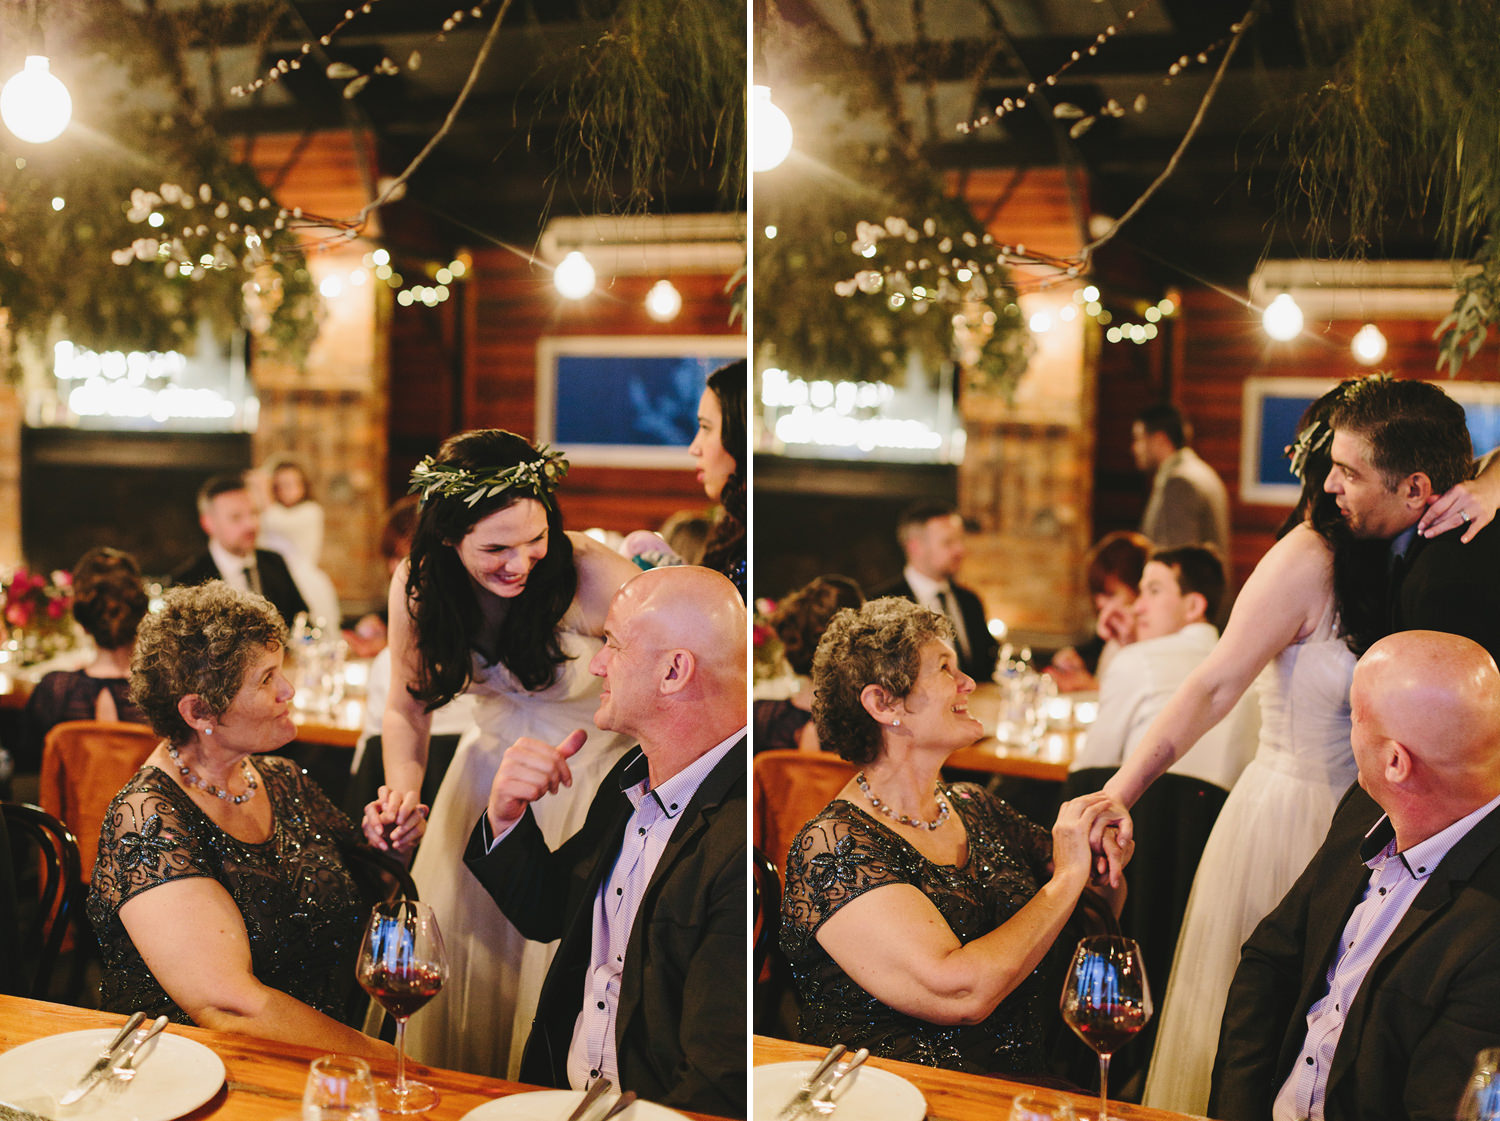 Melbourne_Winery_Wedding_Chris_Merrily141.JPG